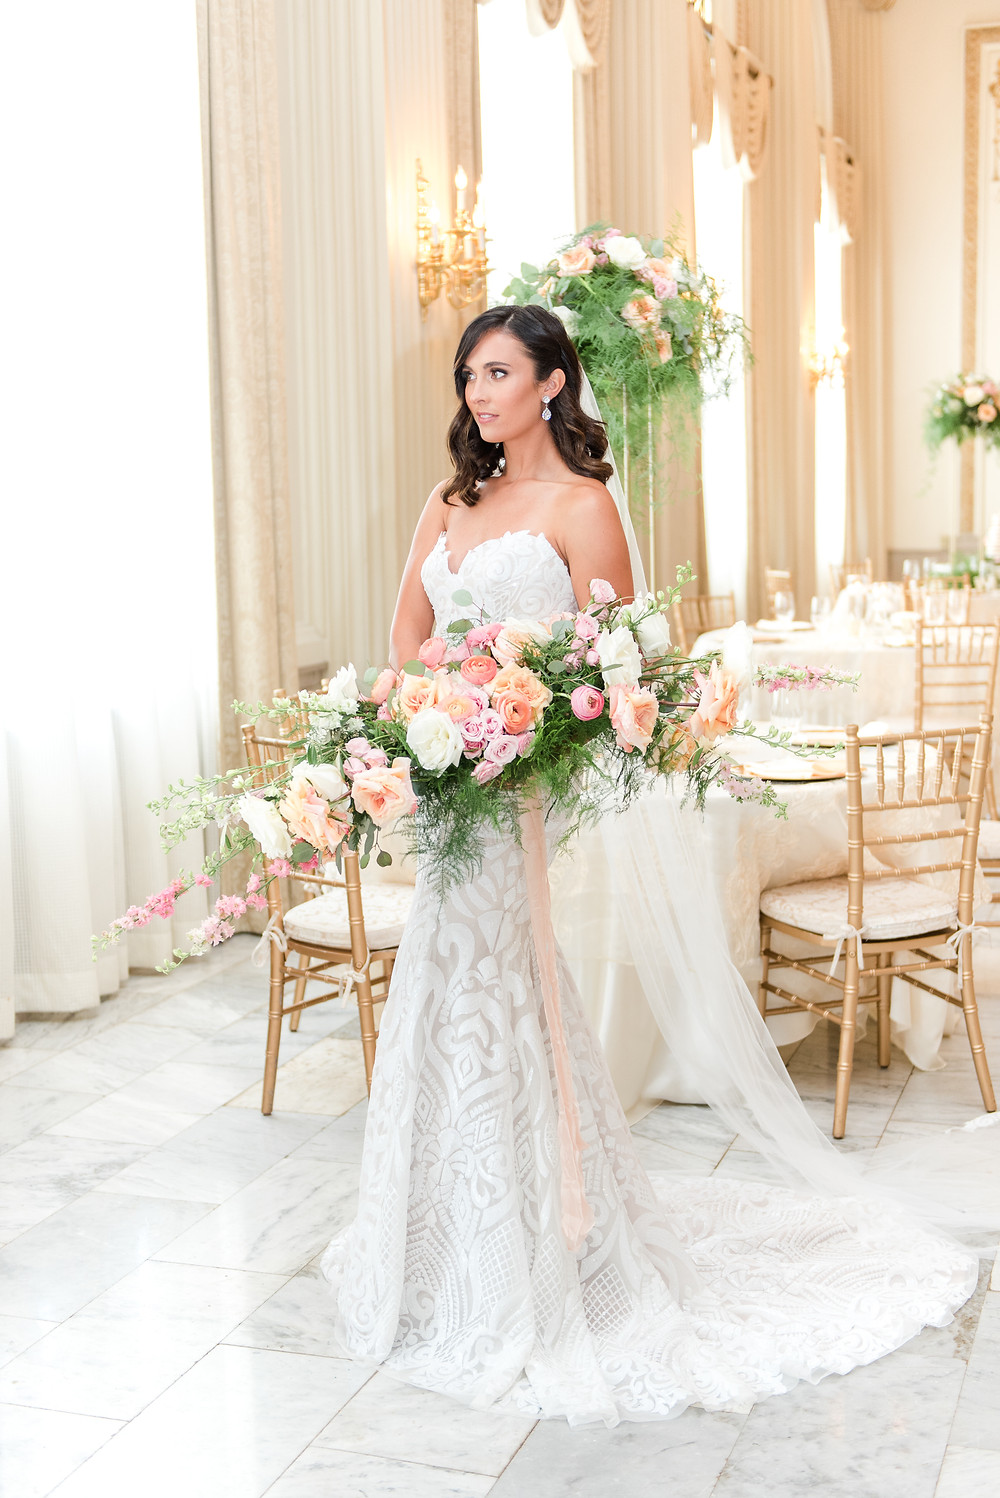 """Blush by Hayley Paige Bridal Gowns are a go-to for luxury brides!  """"Blush by Hayley Paige bridal gown - Ivory Marrakesh all-over beaded gown, scalloped deep sweetheart neckline with nude net insert and t-strap back, full A- line skirt and cashmere lining"""" is so descriptive and explains the gown to a T!  """"Hayley Paige, head designer of the Blush and Hayley Paige bridal collections, made a jump start in fashion by interning for Nina Garcia at Elle magazine while attending Cornell University. She went on to work in ready-to-wear for Jill Stuart after receiving honorary attention for her 10-piece bridal collection shown during her graduating year. Eventually, her dedication to all things creative led to designing and styling abroad where she developed an appreciation for European influences. Paige established herself as an integral designer for the Melissa Sweet bridal and bridesmaid collections and was the primary designer behind the first Marchesa Eterna bridal collection at Priscilla of Boston. Her contributions can be found in highly sought-after bridal publications, as well as nation-wide bridal boutiques. Ever so eclectic, her designs capture a romantic and charming aesthetic that balances inner ingénue and sophistication. Her interpretation of worldly influences and desire to dress hopeful romantics, have provided a foundation for a fanciful and fresh take on bridal wear. Never taking herself too seriously and fully embracing the adorning history of the bridal industry, Hayley Paige develops her craft from an inspirational place of appreciation and enjoyment."""""""